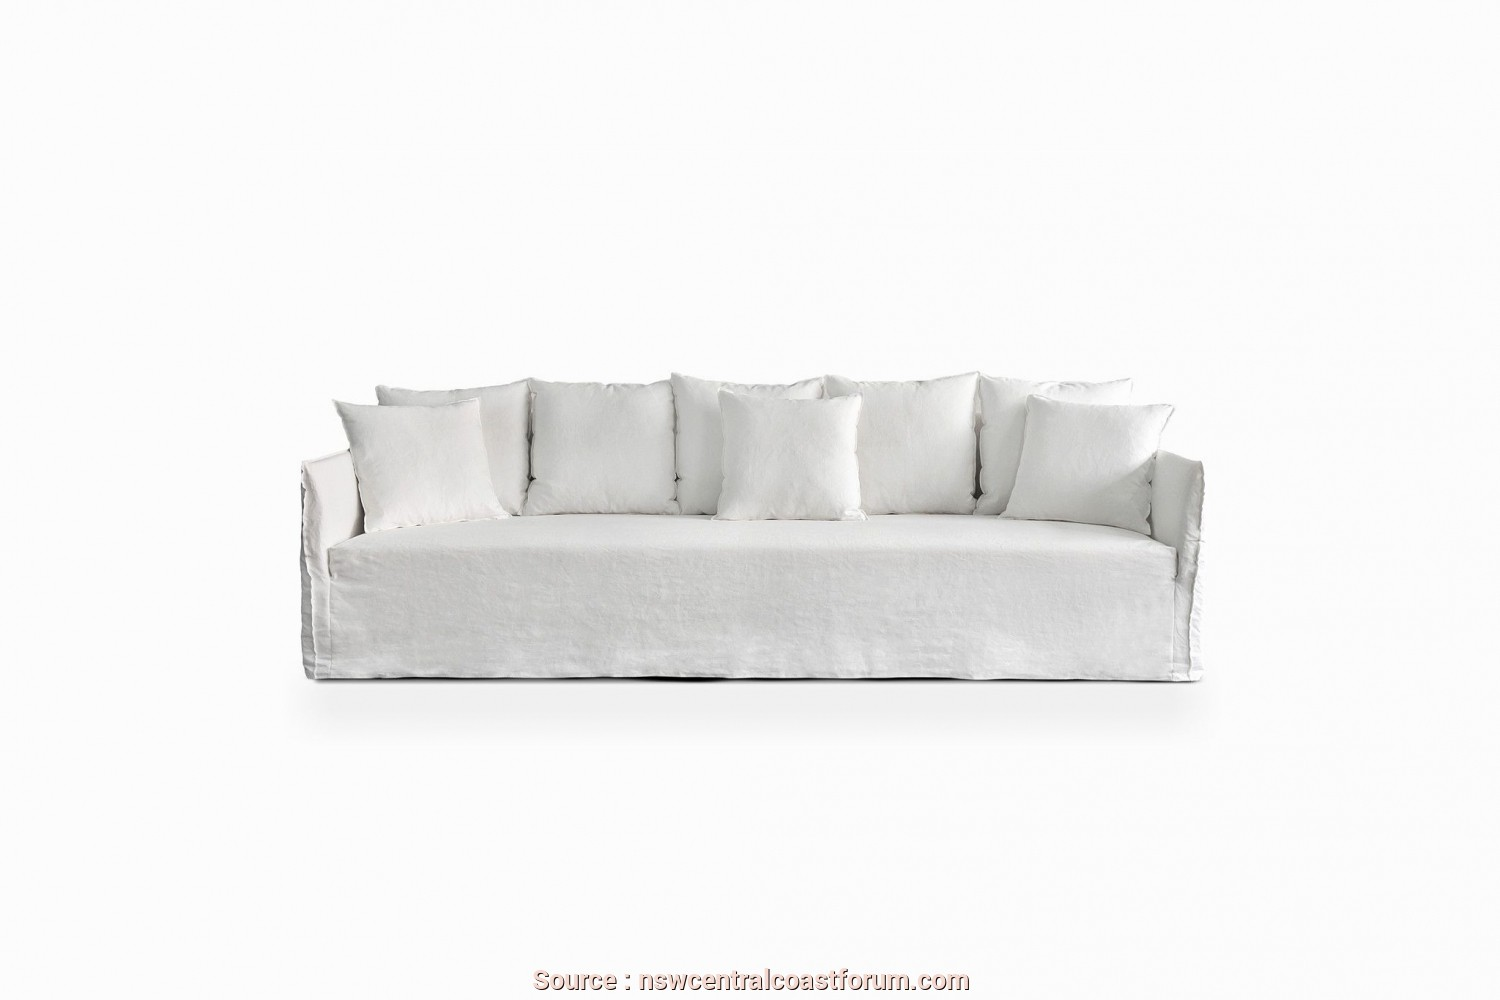 Subito.It Divano Gervasoni, Sbalorditivo Divano Ghost Gervasoni Fresco, Deep Sofa With Arms From, House